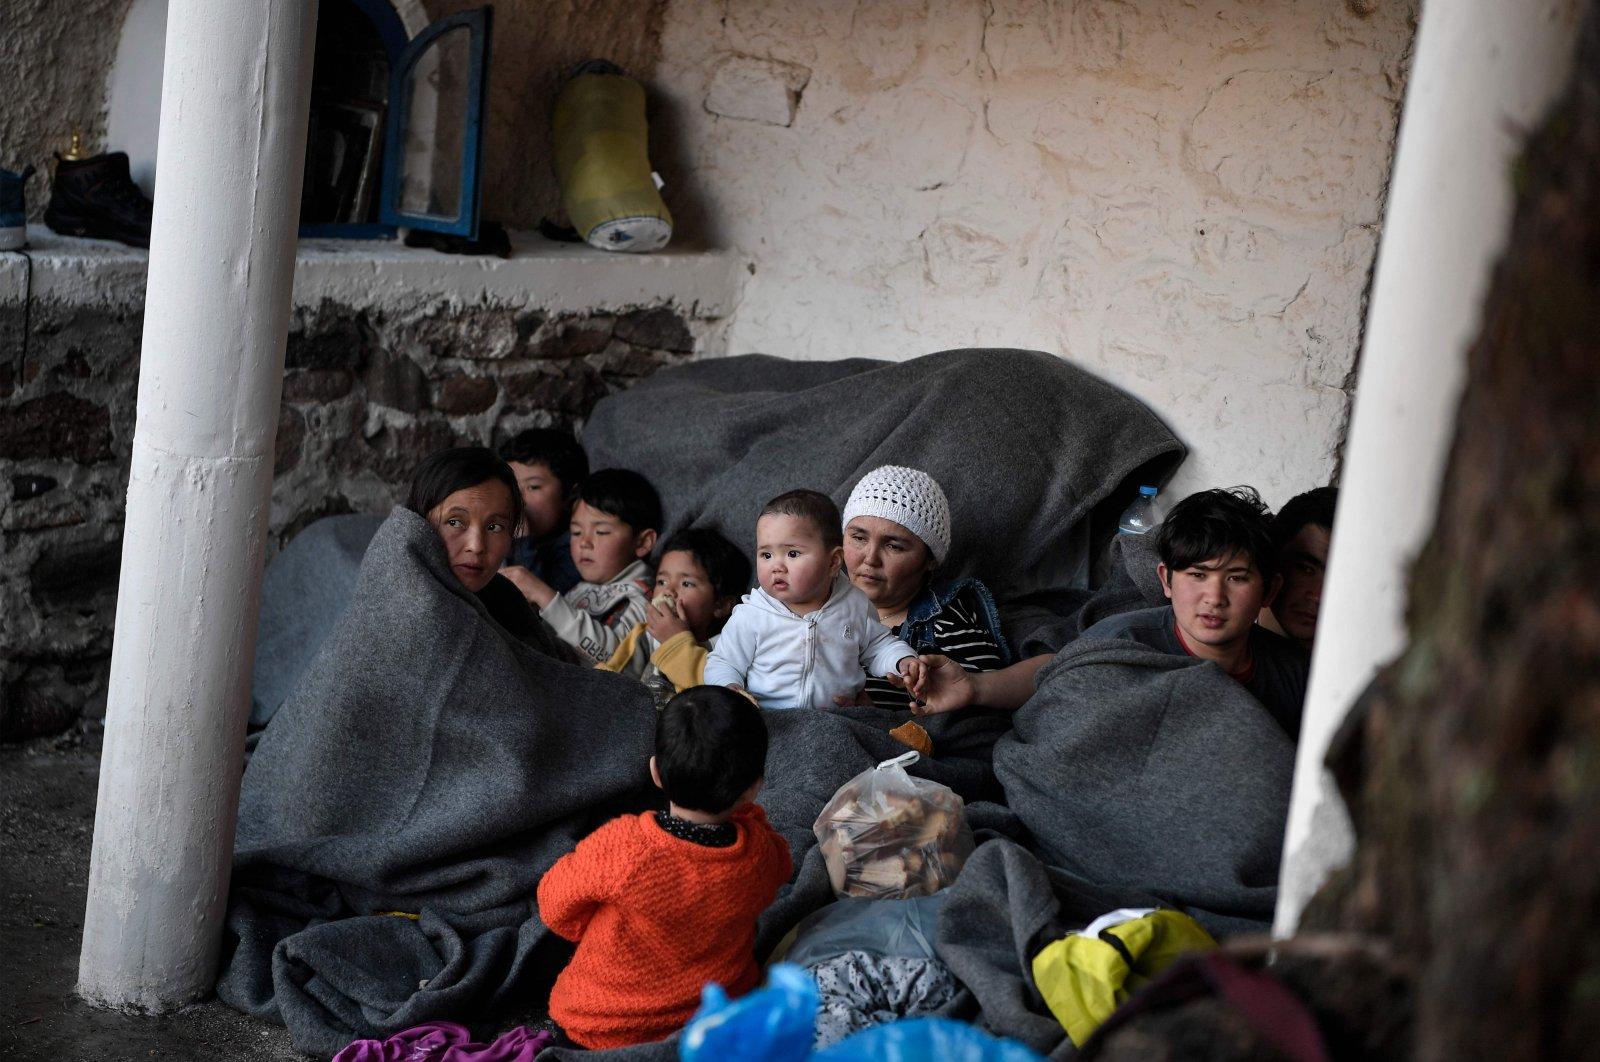 Migrants and refugess who arrived from Turkey to the Greek island of Lesbos on March 5, try to keep warm as they gather in the yard of a small church where they have spent the rainy night near Skala Sykamnias on March 6, 2020. (AFP Photo)